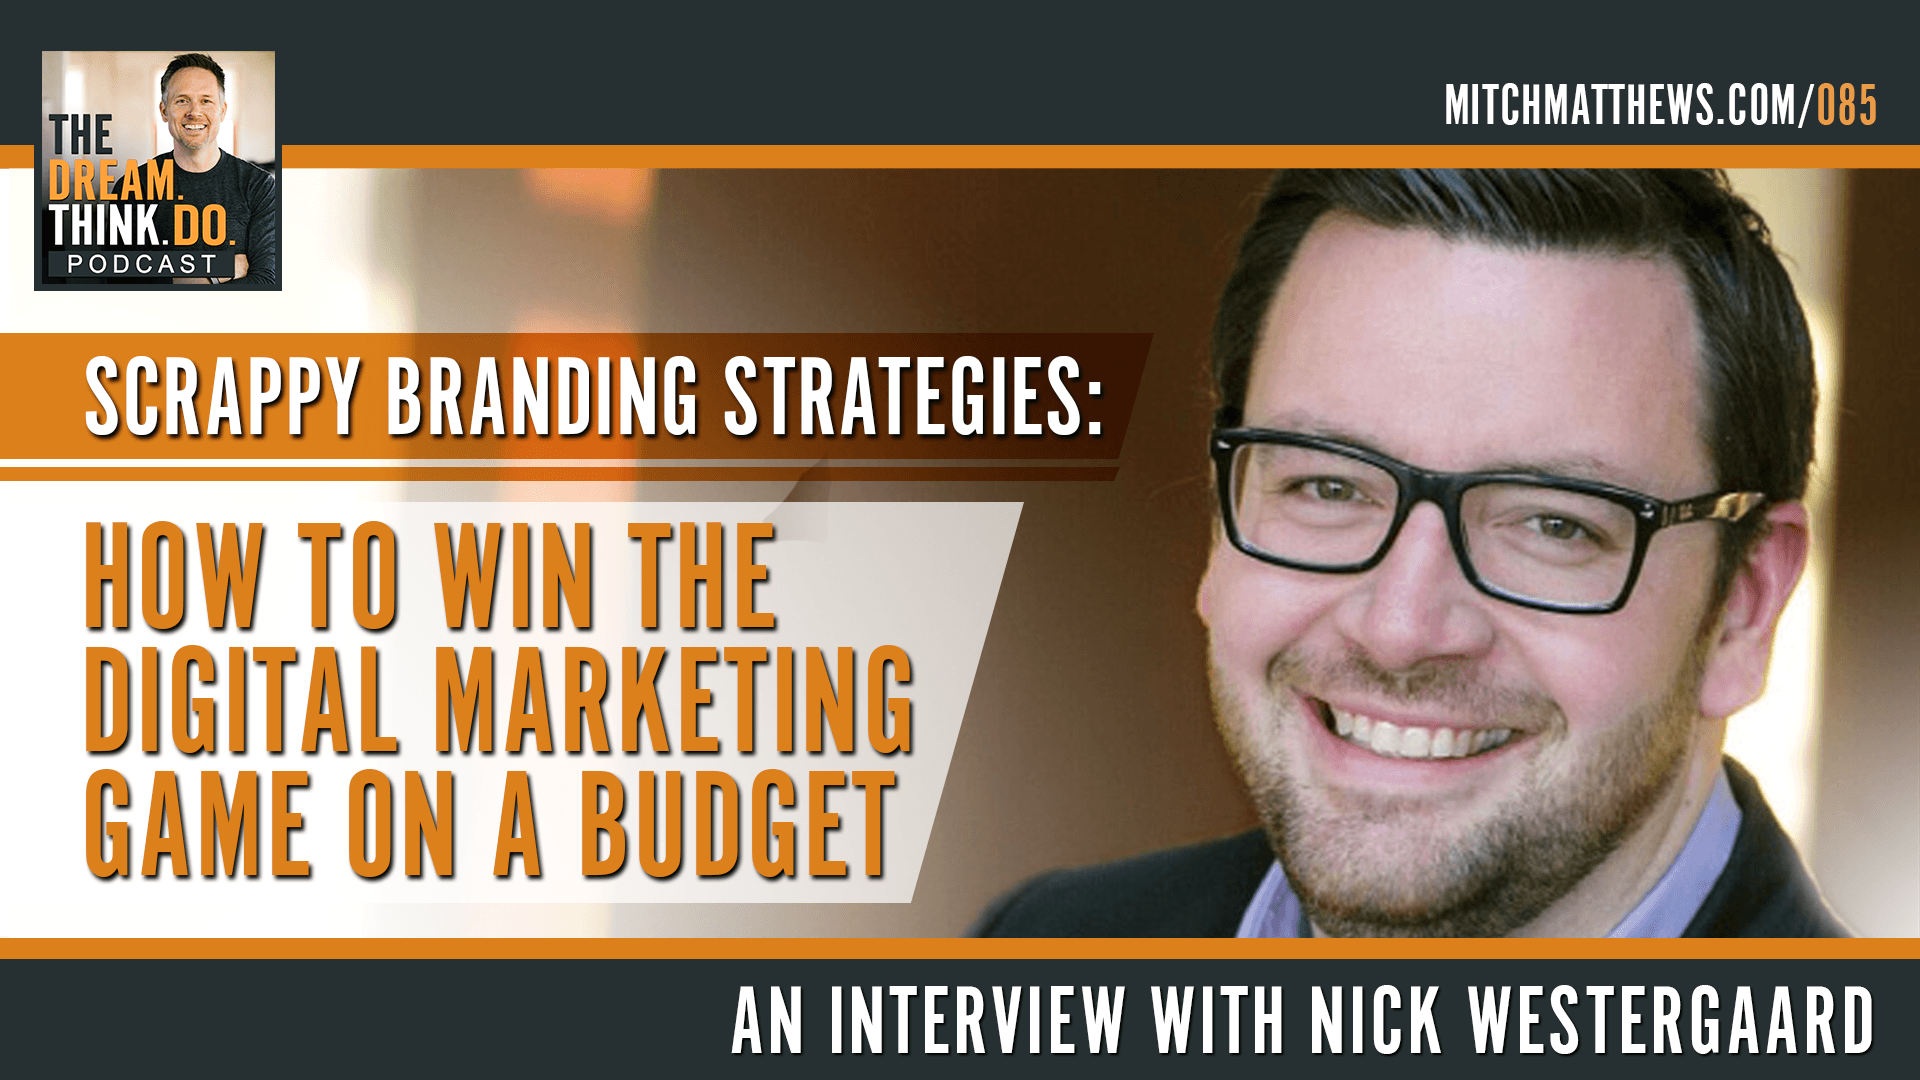 Nick Westergaard | Scrappy Branding Strategies - How to win the digital marketing game on a budget.